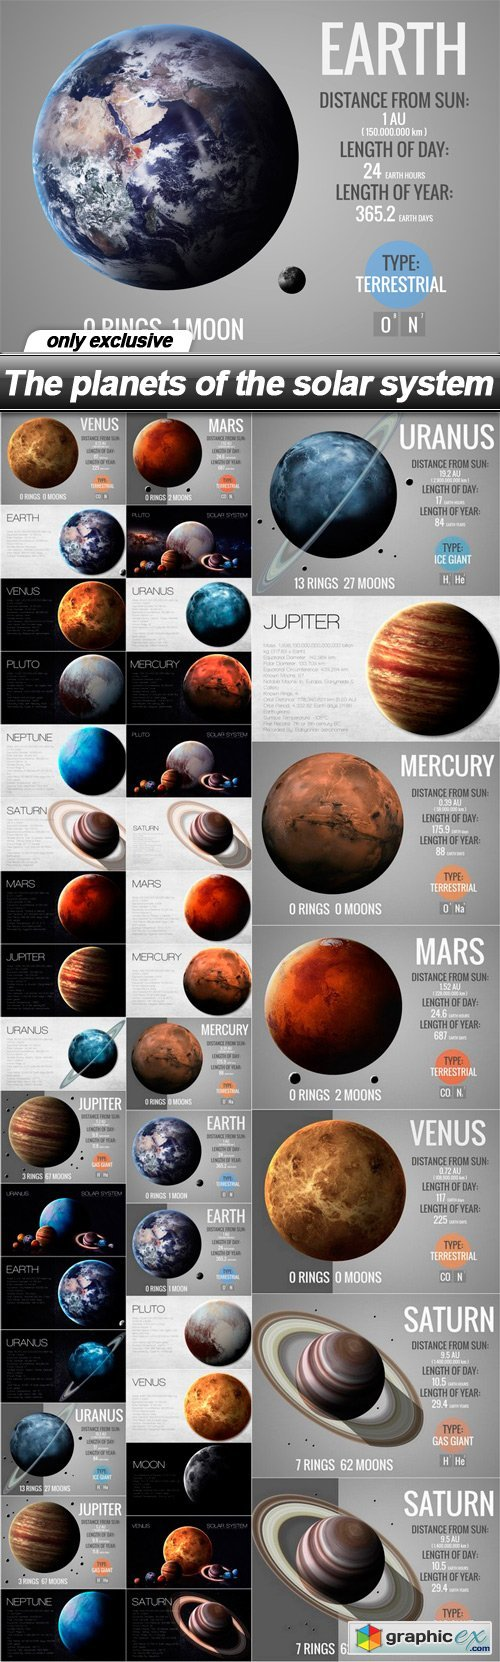 a report on the planets of the solar system Venusvenusby dylan and jacob venus is the second planet in our solar system it is also the hottest planetvenus's diameteris 12,104km so it is like earth's twin.